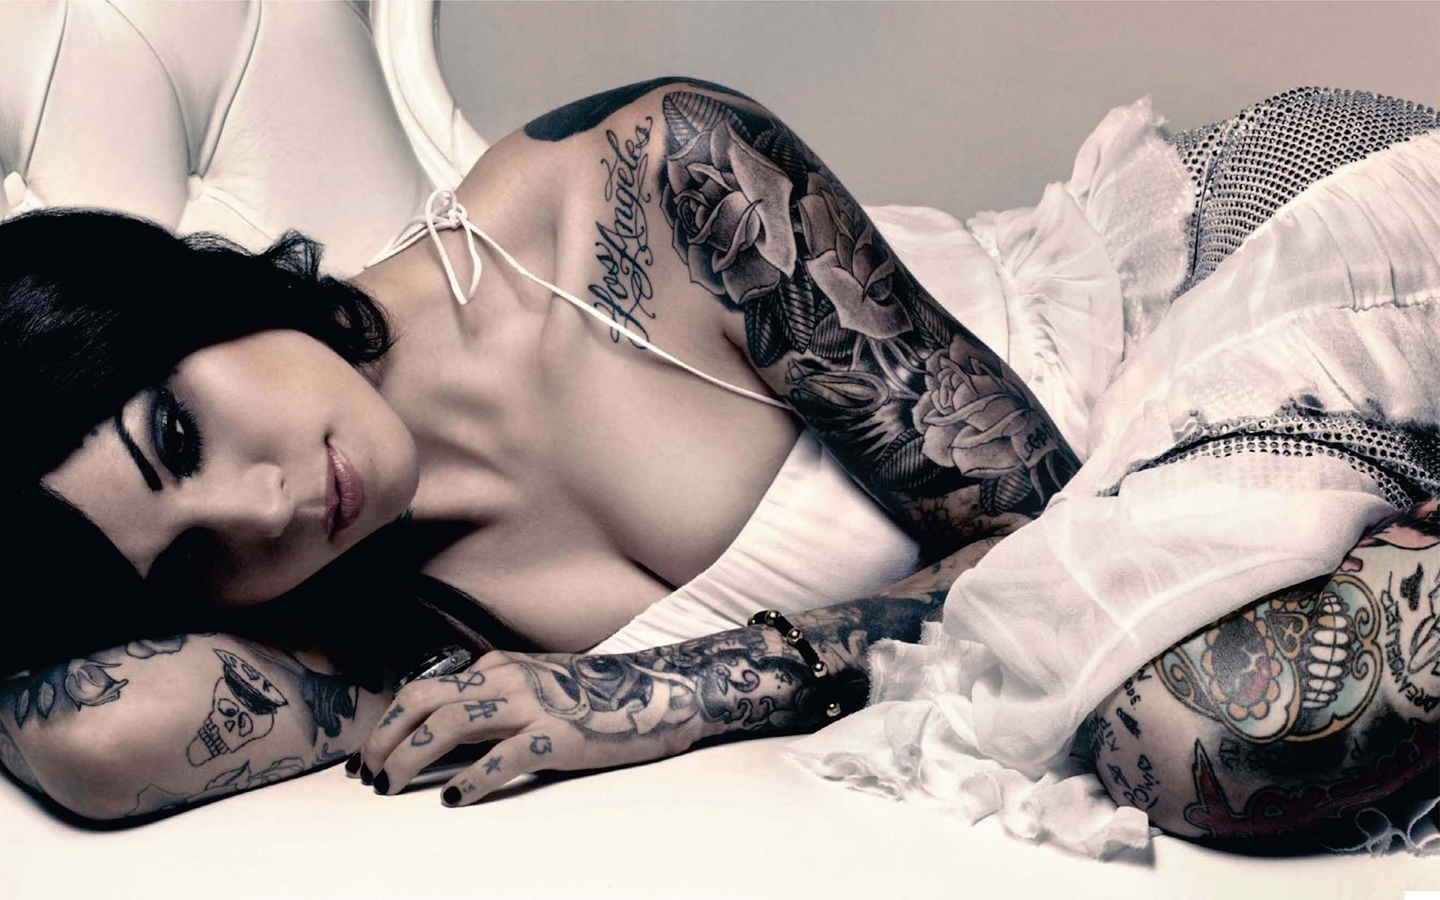 kat von d wallpaper, hot and sexy lingerie picture, tattoo images